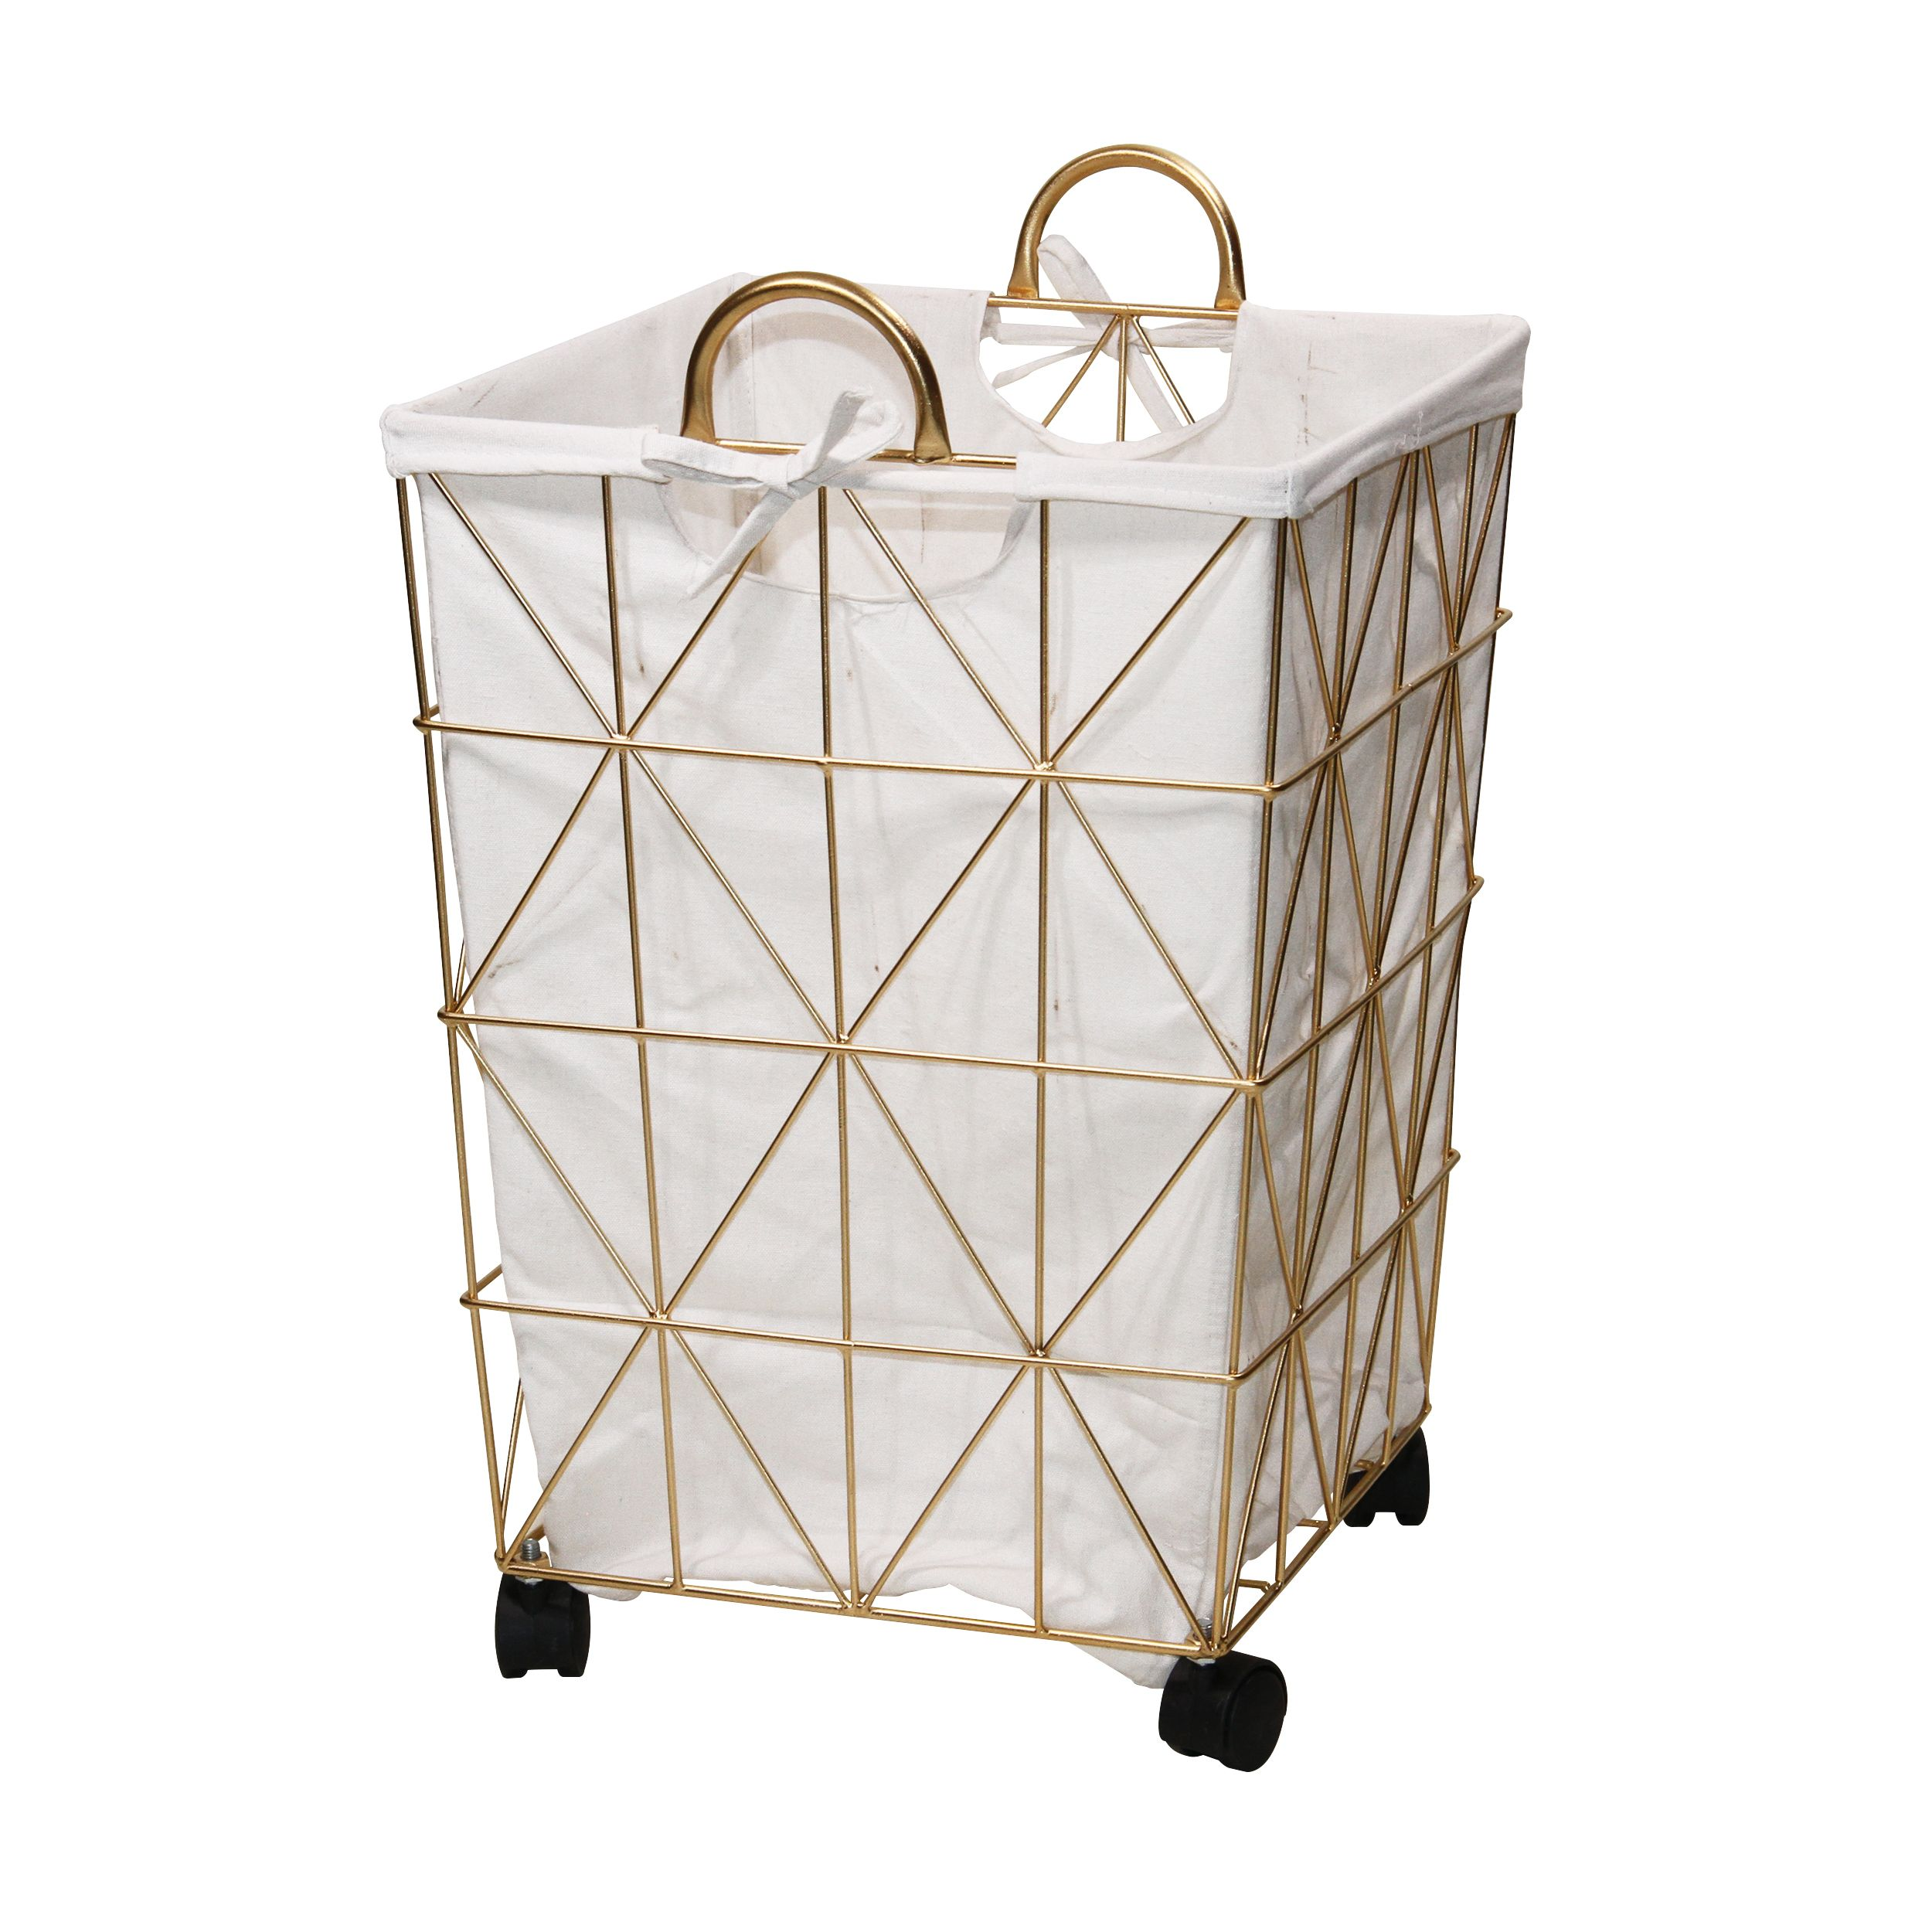 Home Hamper Mainstays Laundry Hamper